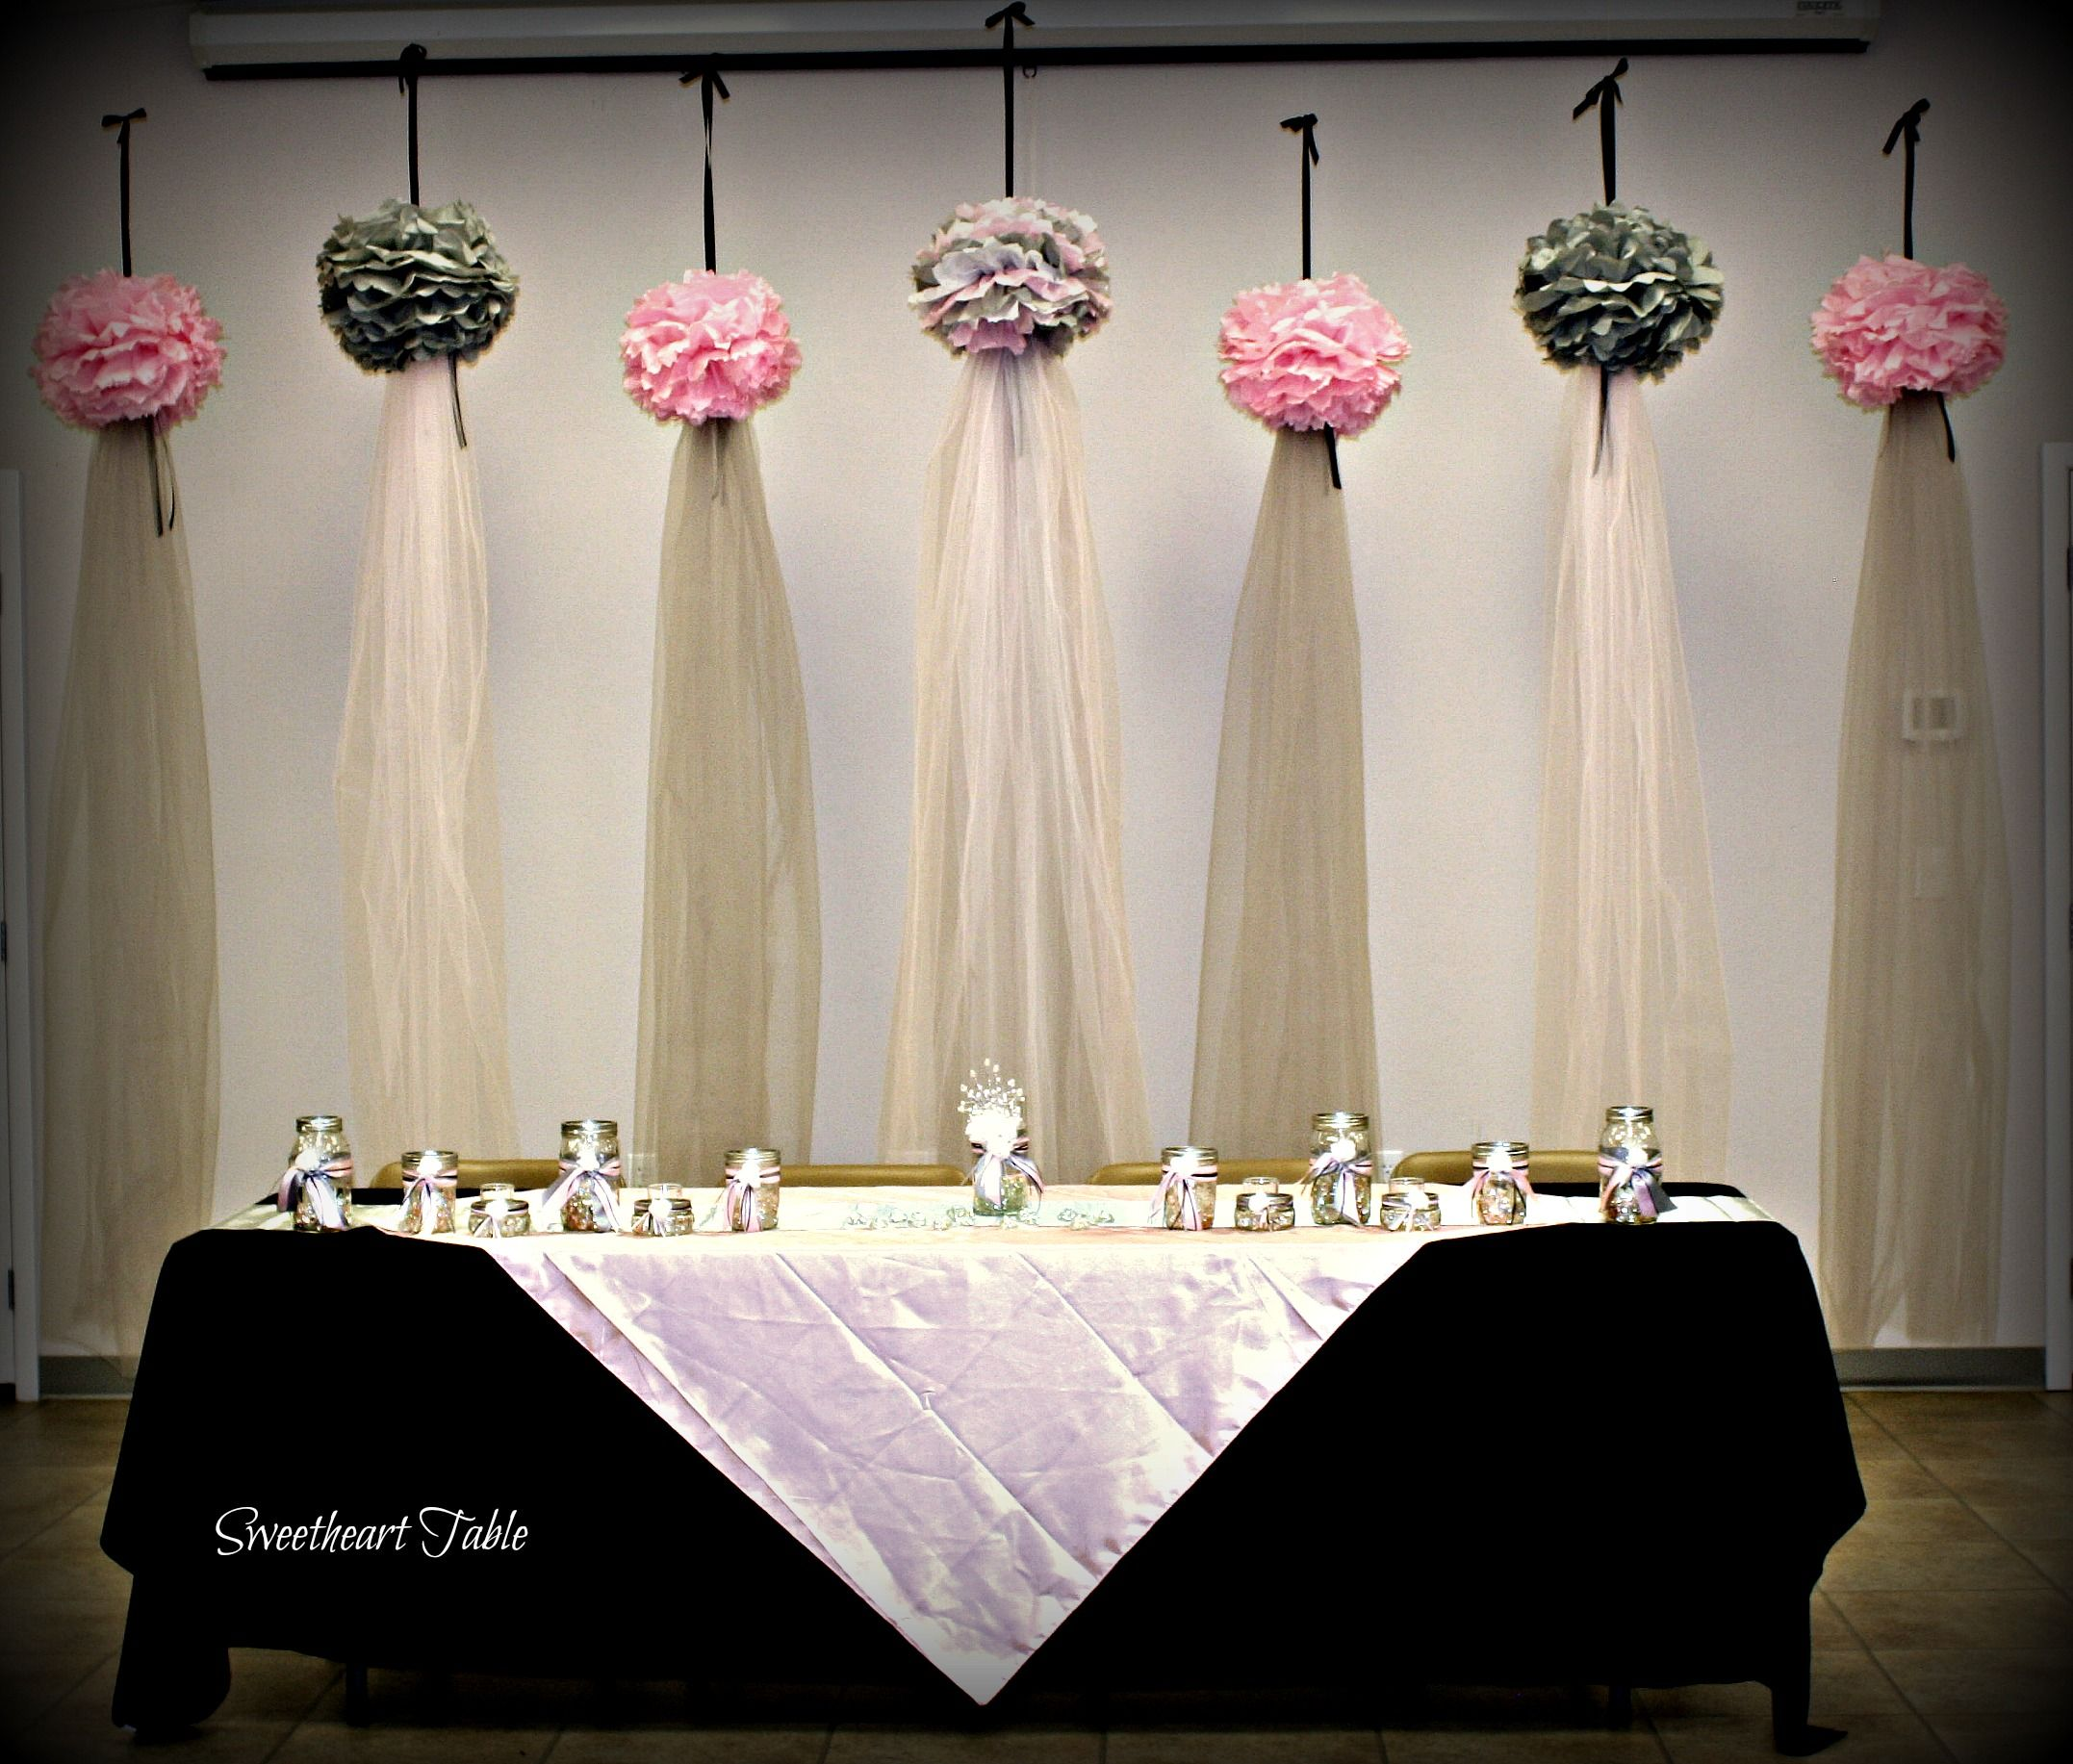 Cute Wedding Ideas For Reception: Floating Pompoms With Tulle Draping Made An Unique